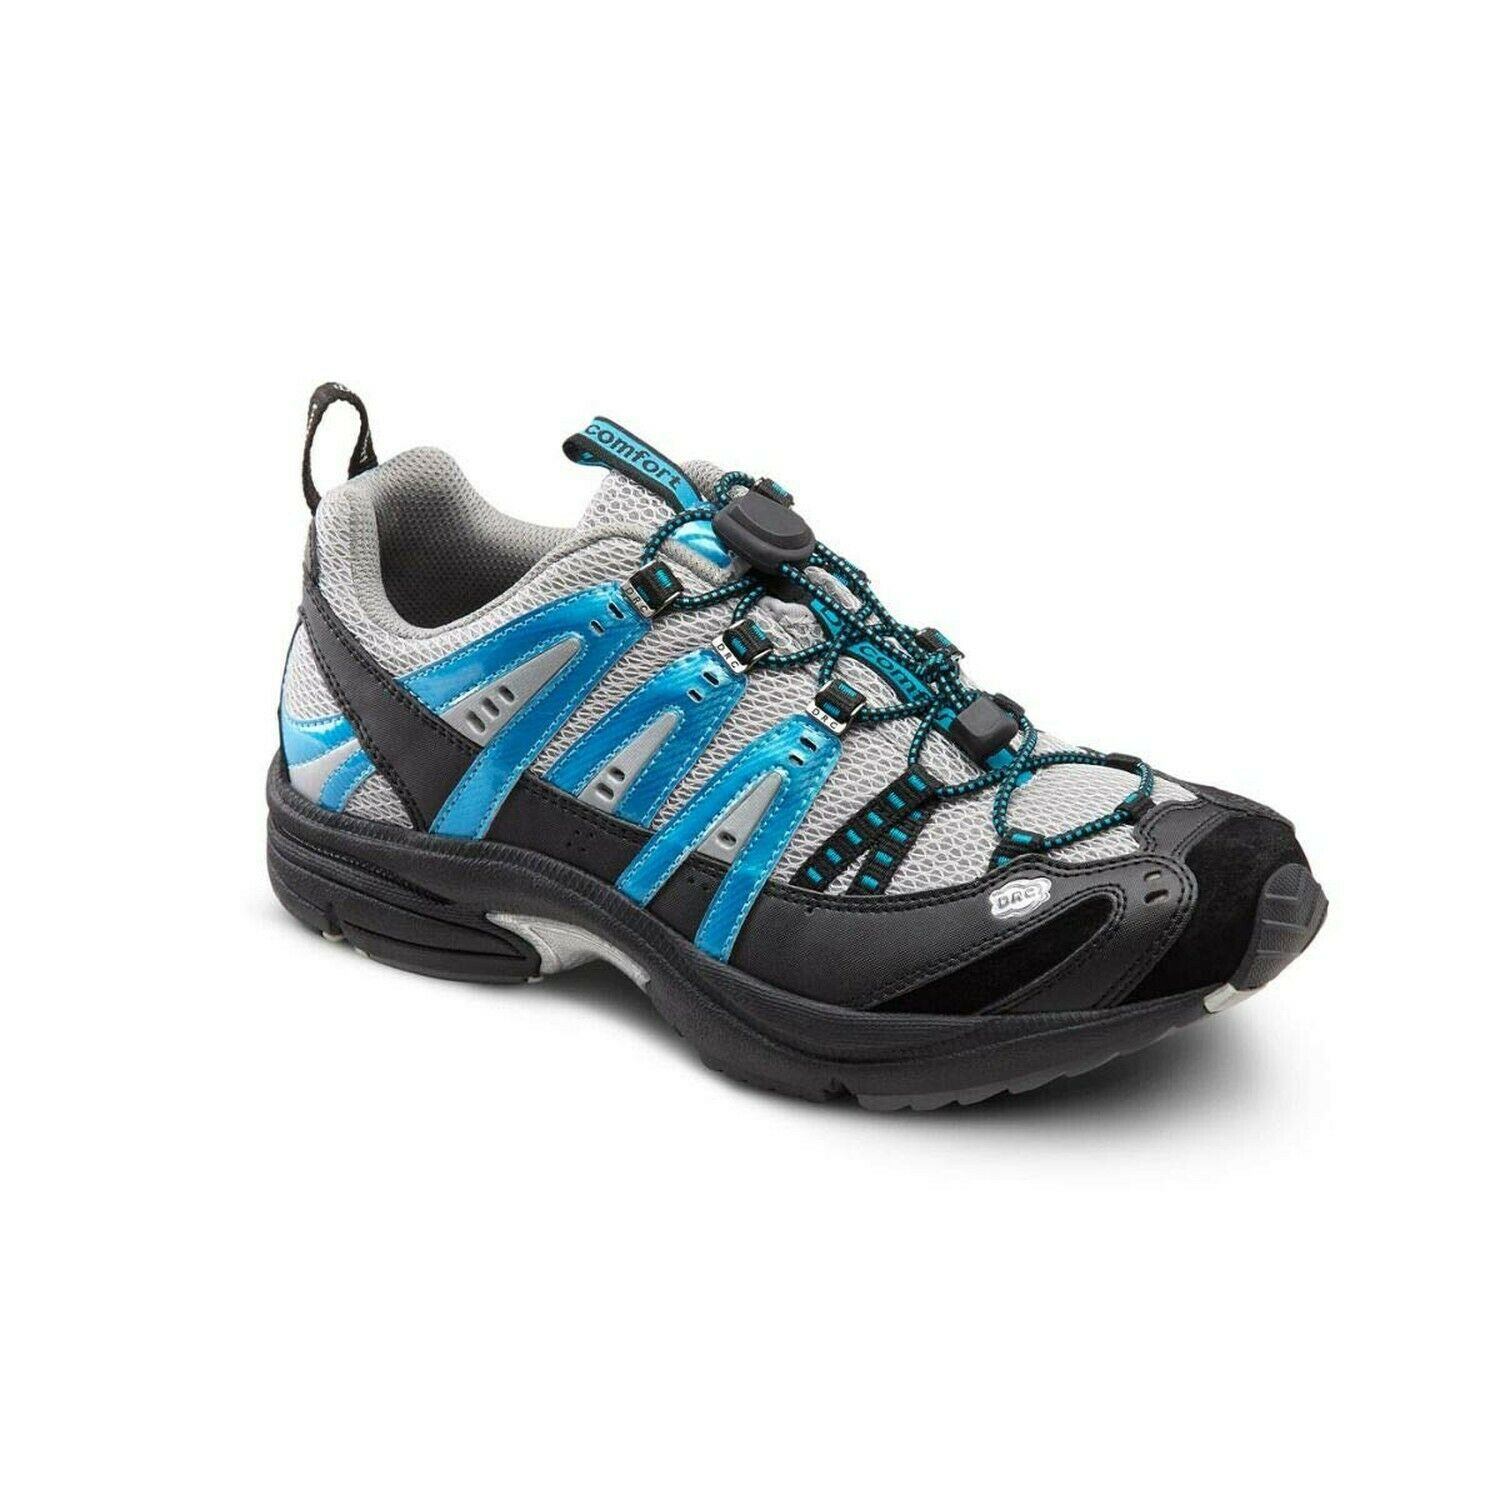 Dr. Comfort Performance Men's Therapeutic Athletic shoes  Metallic bluee 11 Med...